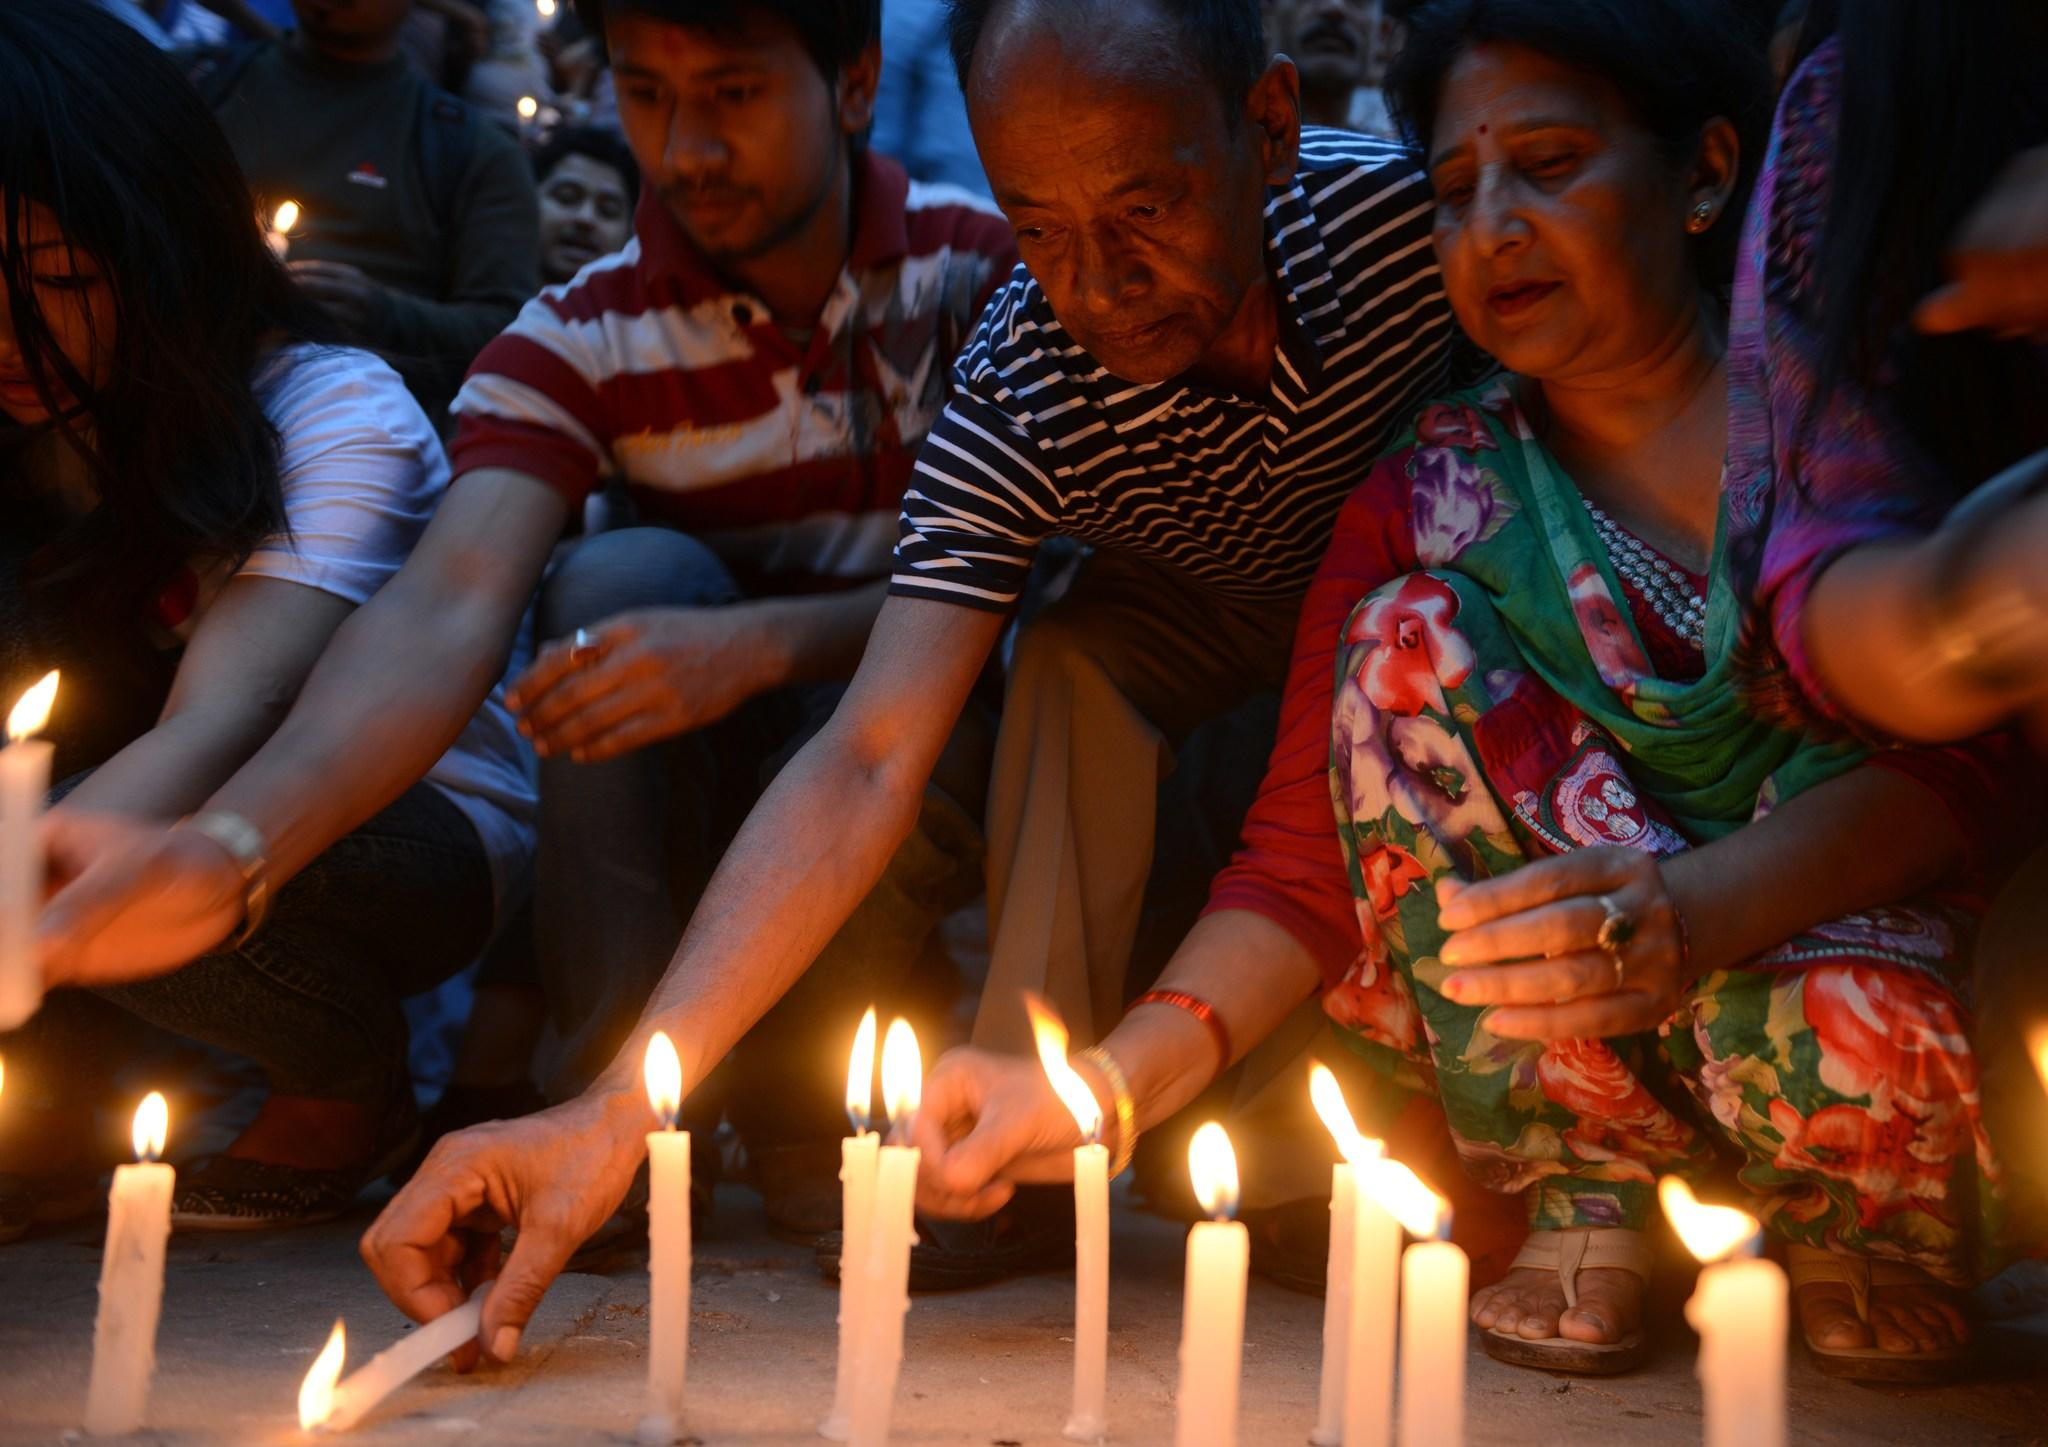 Nepalese people light candles in memory of the 16 Nepalese Sherpa guides killed in an avalanche on Mount Everest in Katmandu on April 30, 2014. An unprecedented shutdown of Mount Everest after the worst ever accident on the world's highest peak has left grieving Nepalese sherpa guides and their families fearing for their livelihoods. The avalanche on April 18 that tore through a group of sherpas -- who were hauling gear up the mountain for their foreign clients before dawn -- left 16 people dead and three others seriously wounded. AFP PHOTO/Prakash MATHEMA (Photo credit should read PRAKASH MATHEMA/AFP/Getty Images)